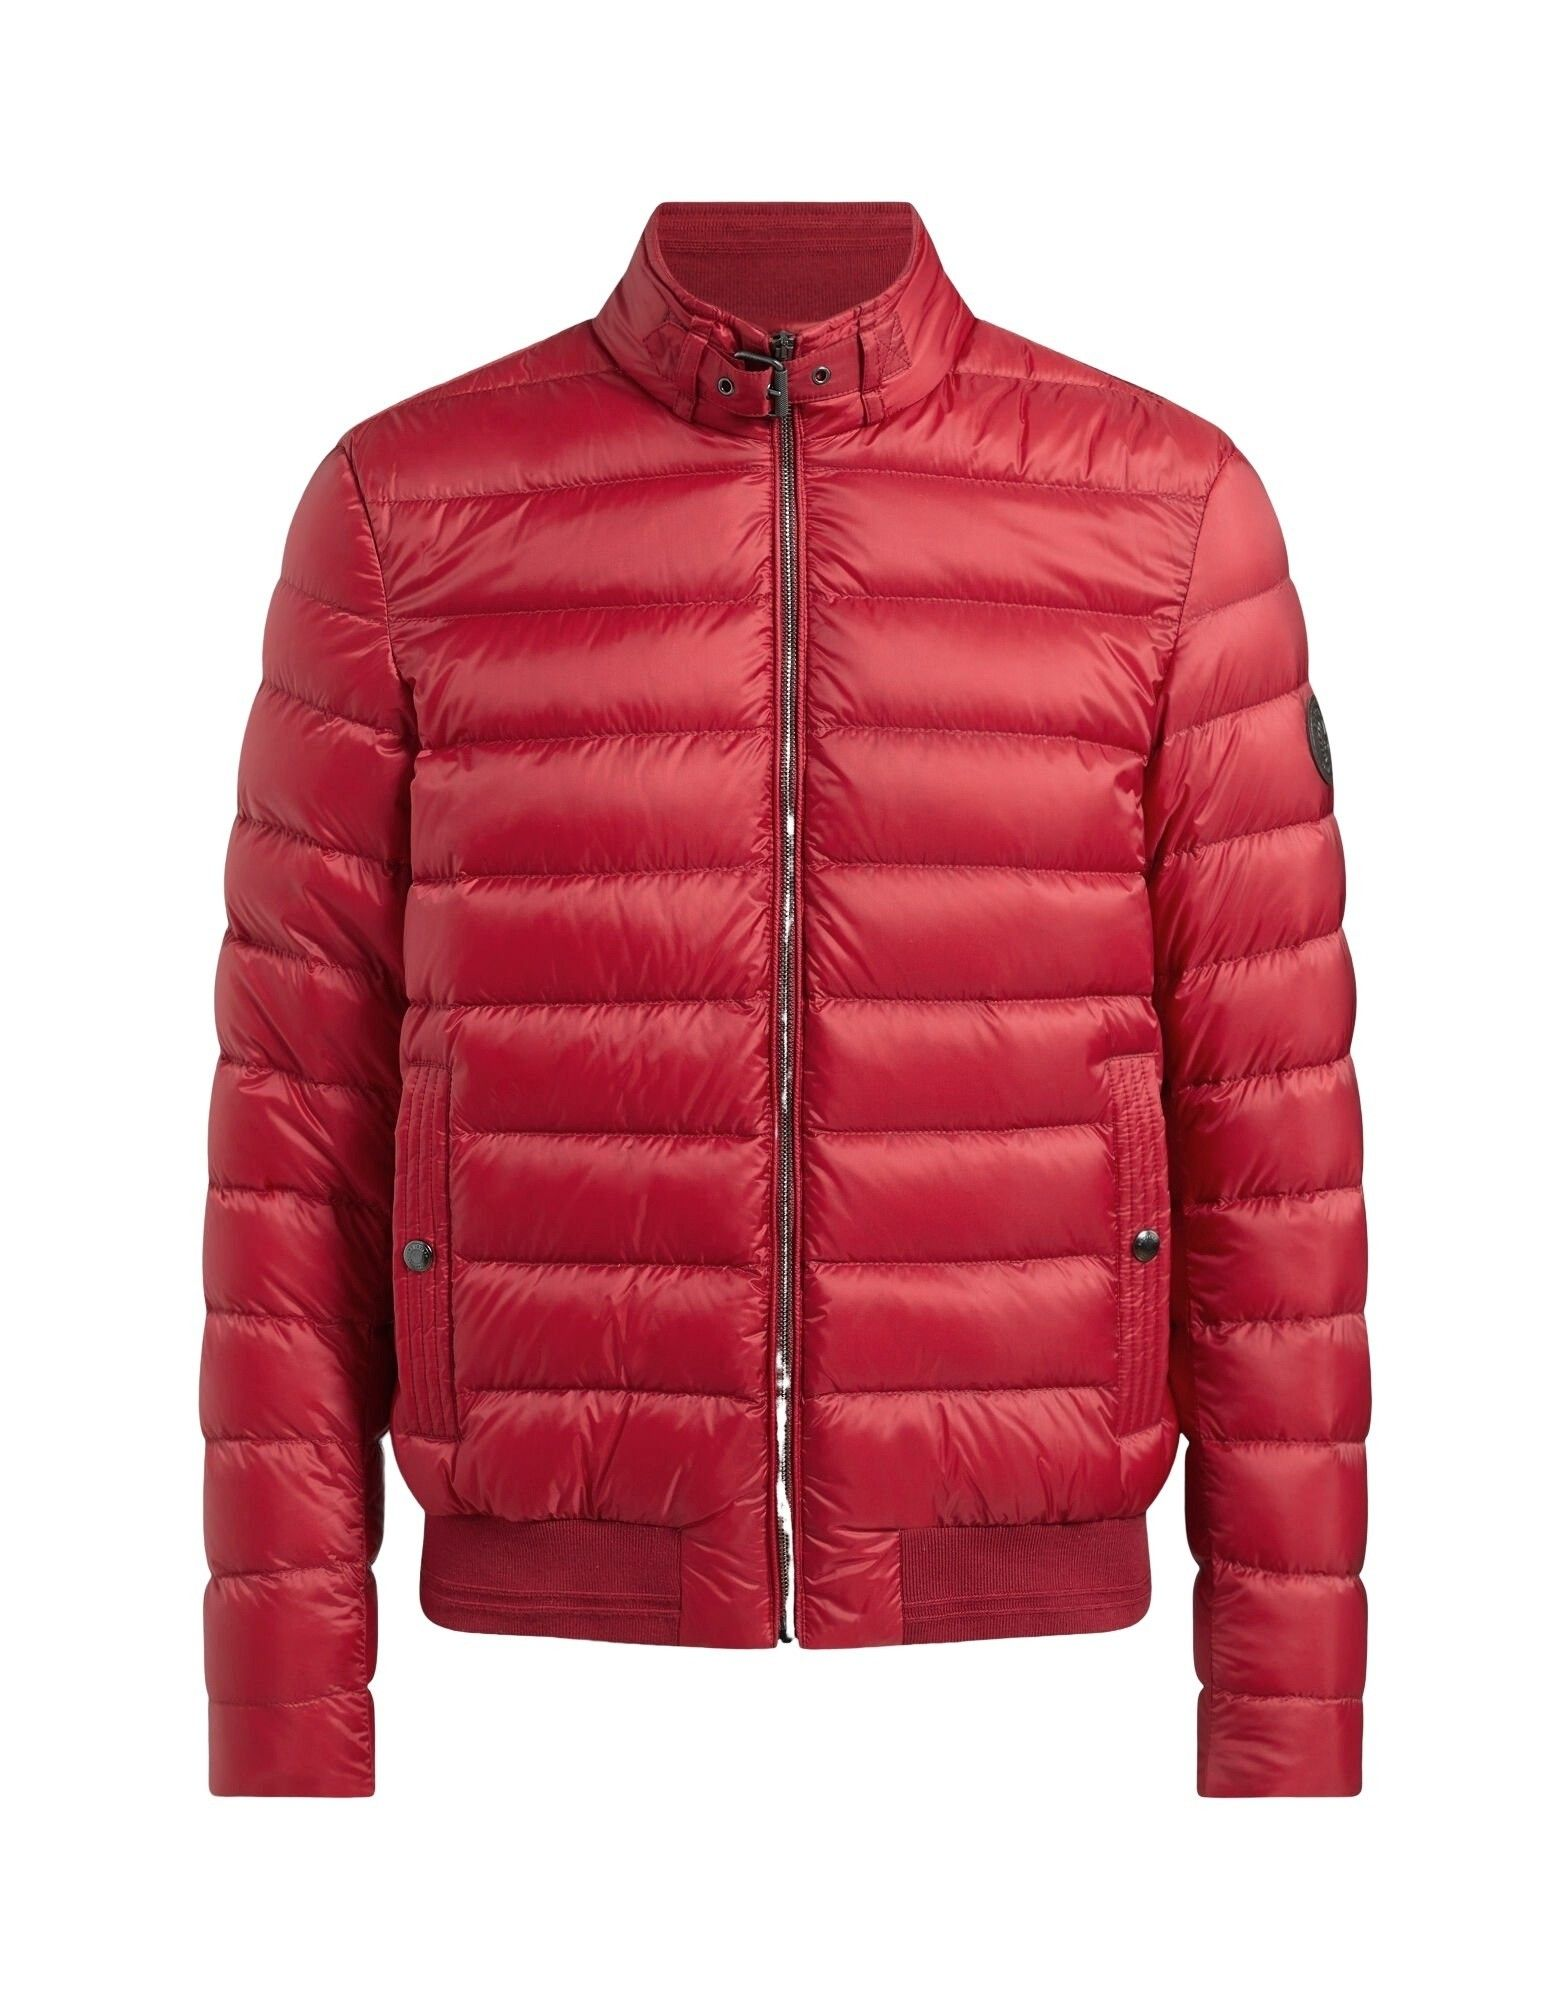 BELSTAFF - Herren Jacke - Circuit Jacket - Red